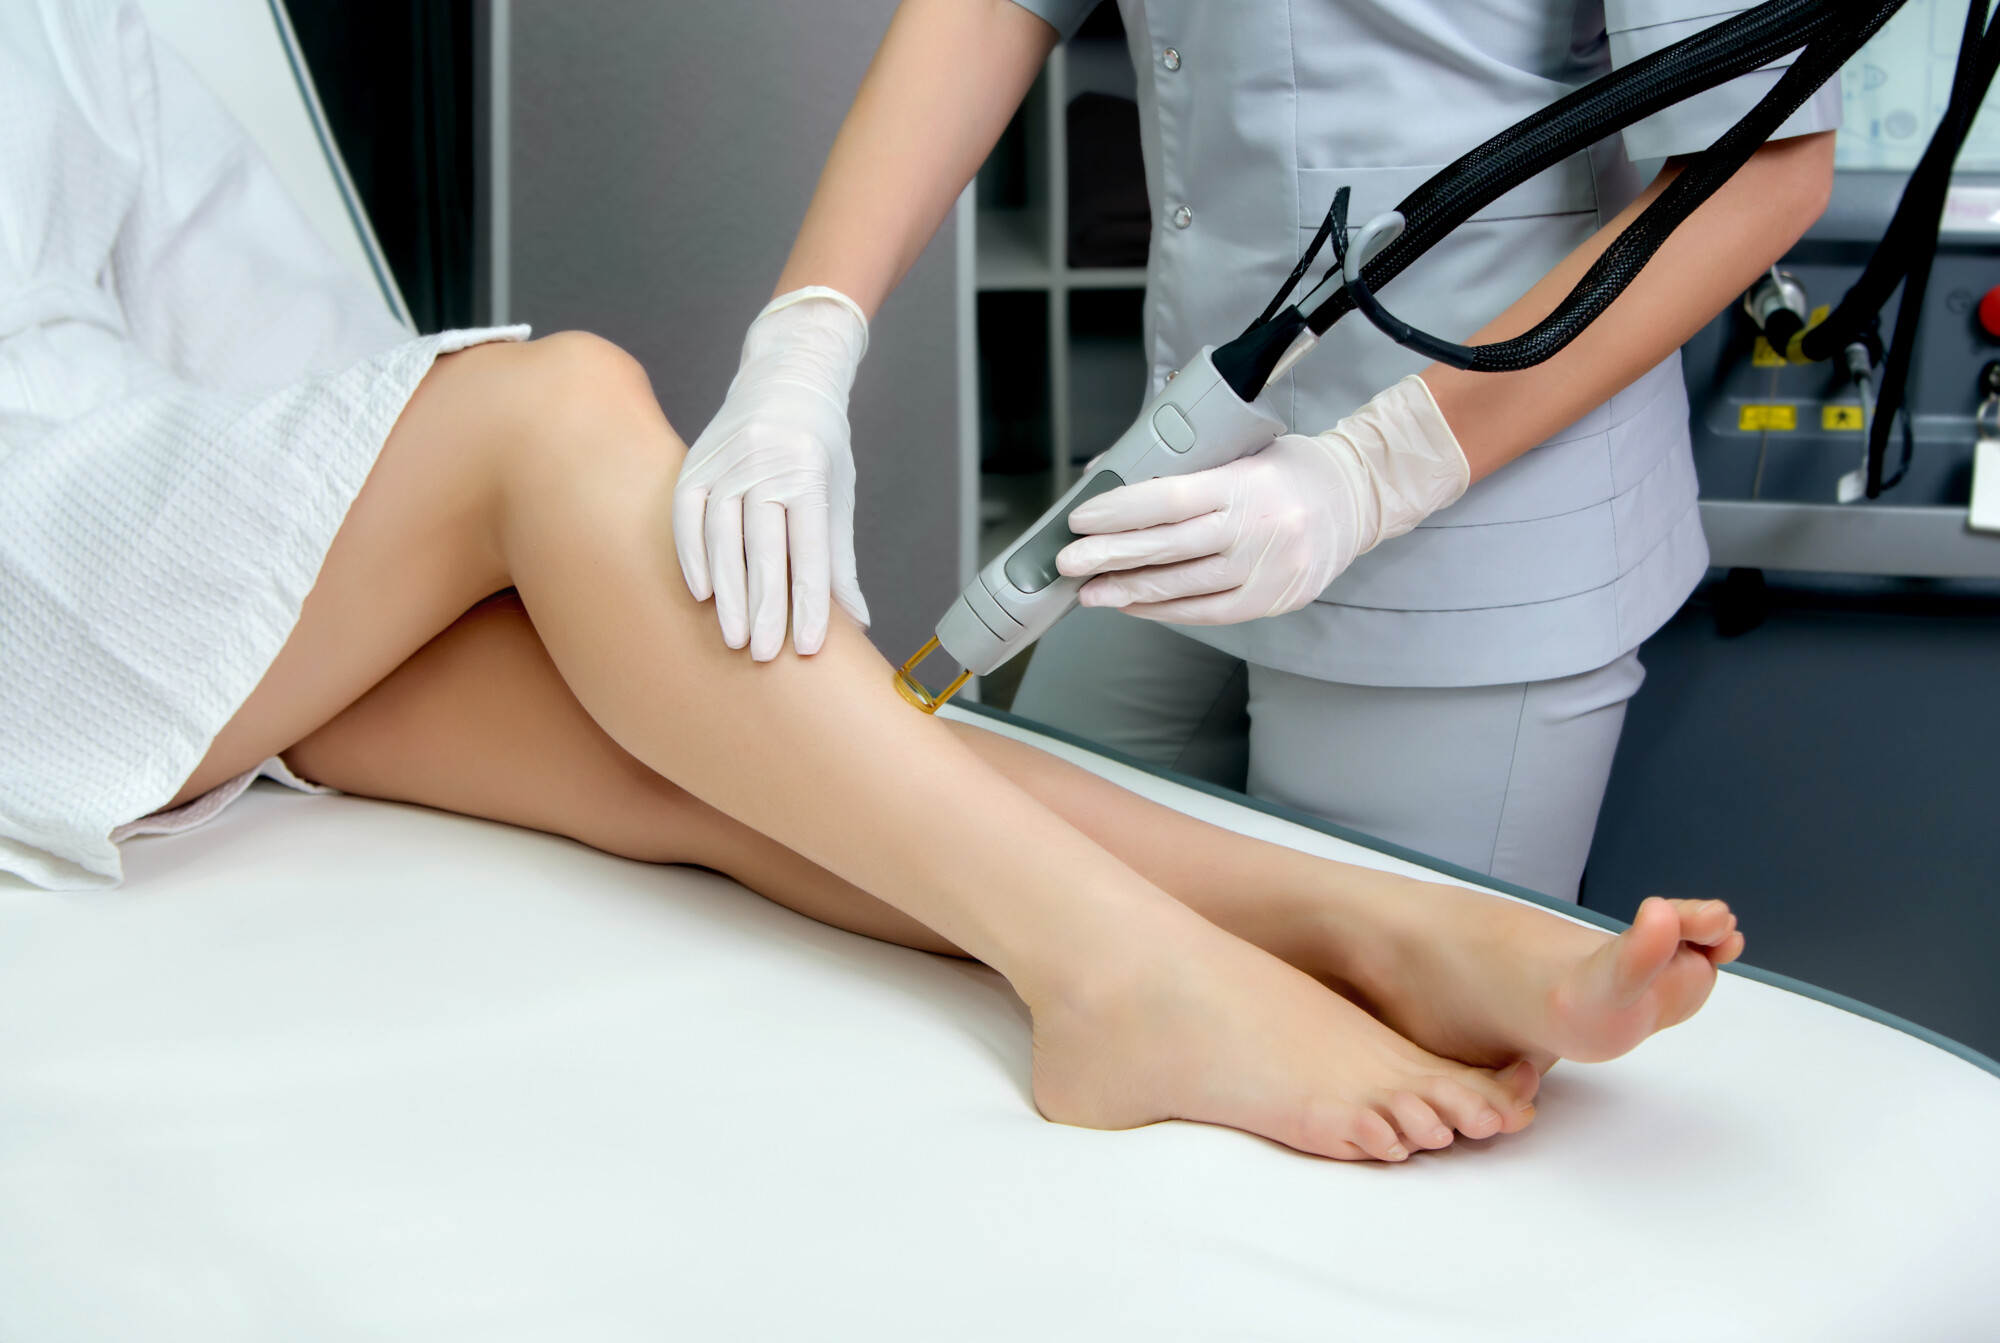 This Is the Average Cost of Laser Hair Removal